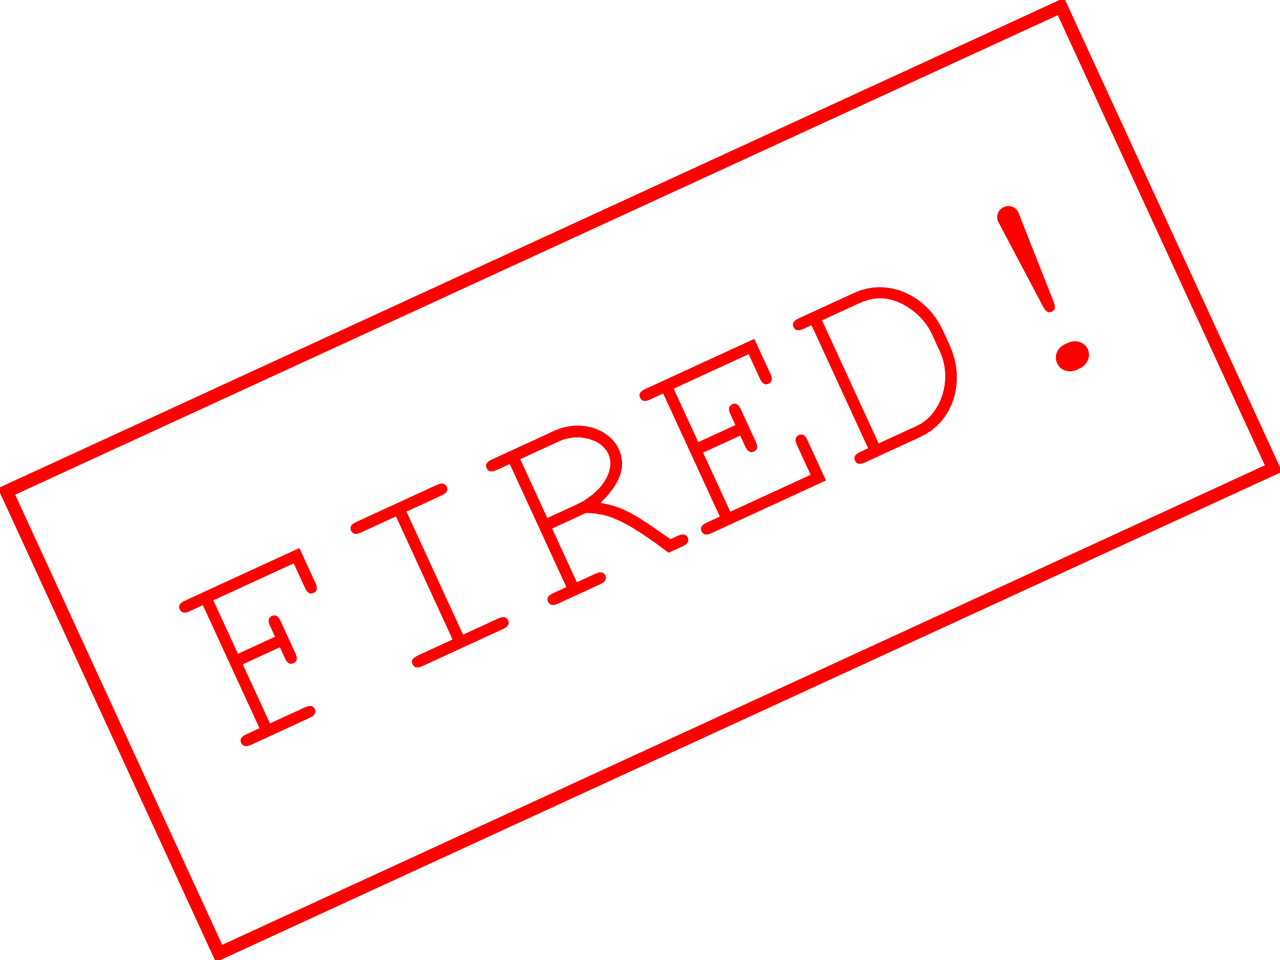 Yelling clipart employment law. Termination is not always